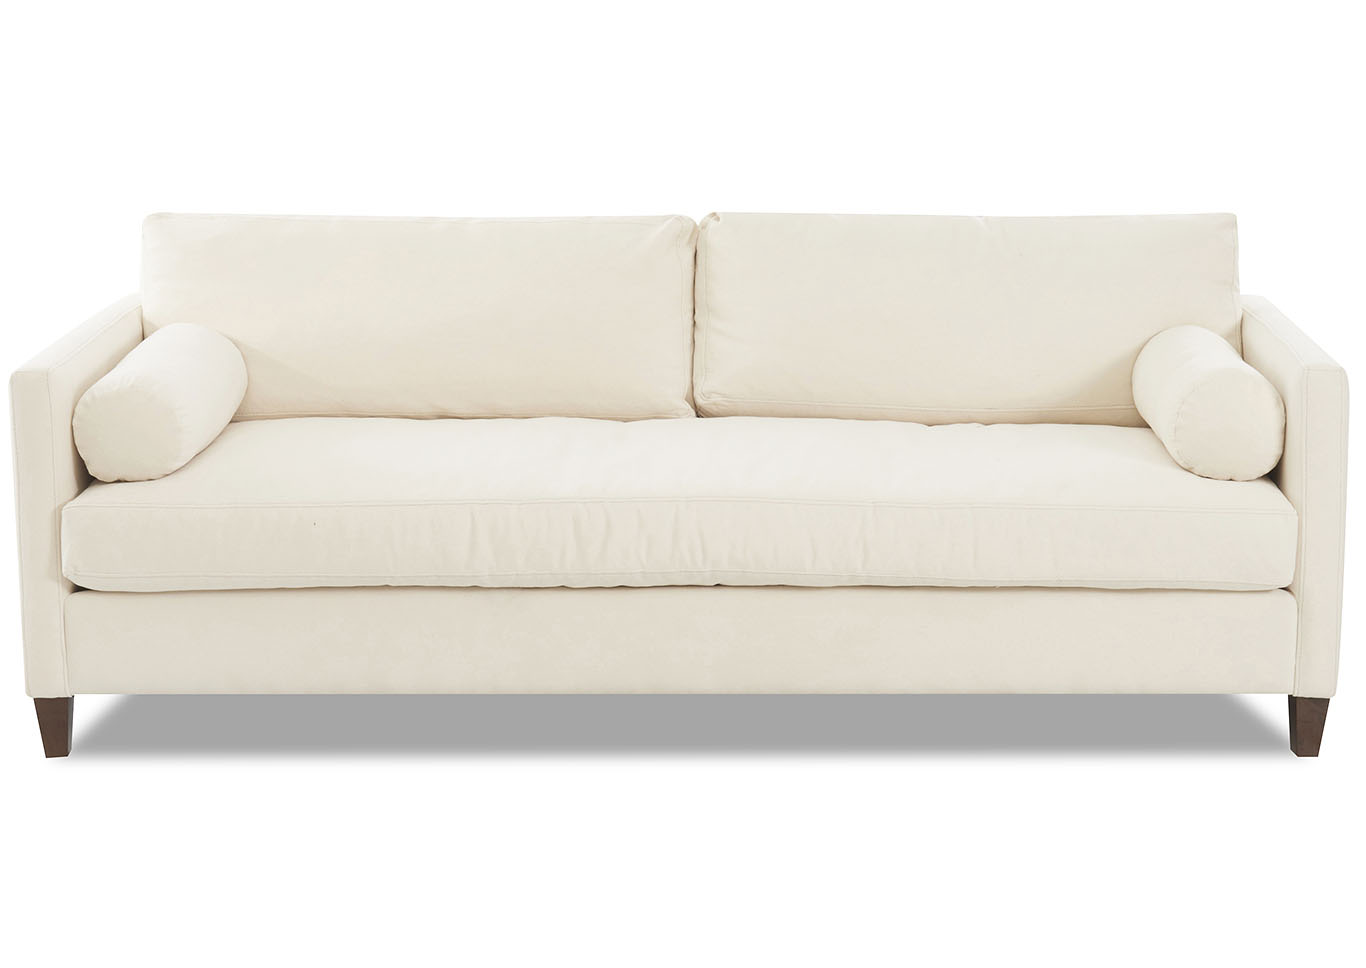 Brinley Bull Natural Stationary Fabric Sofa,Klaussner Home Furnishings